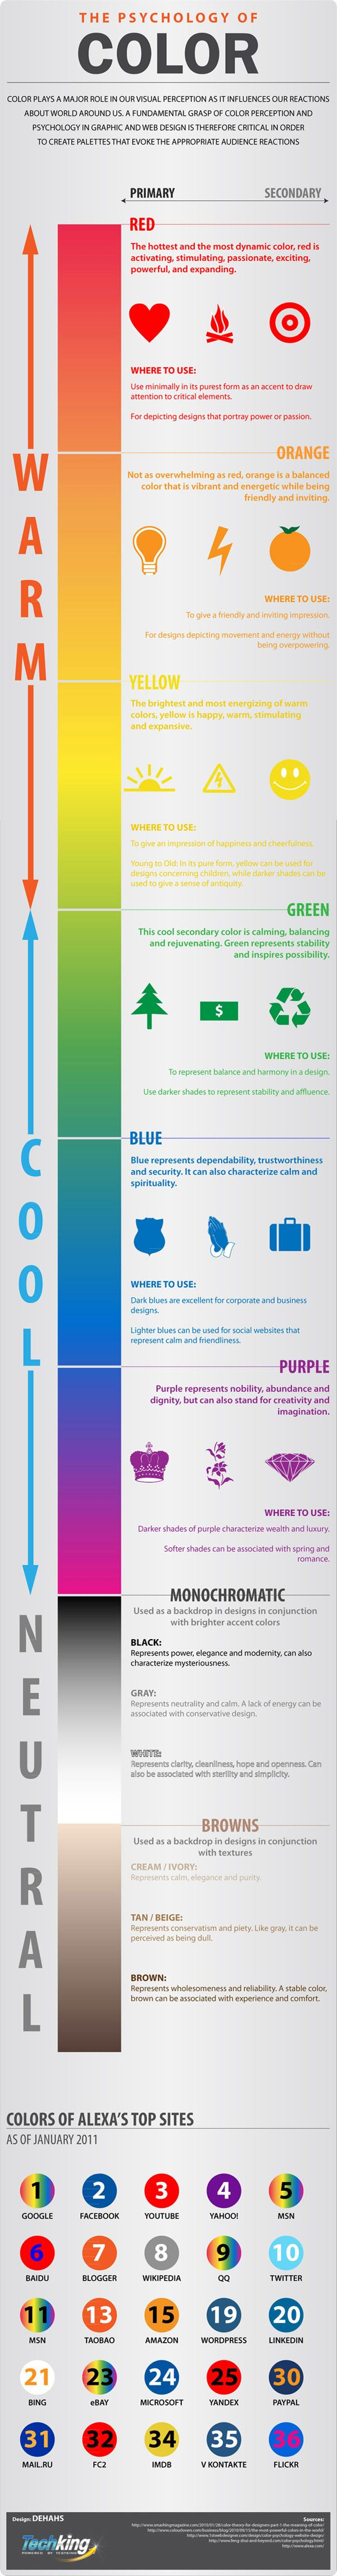 The psychology of color